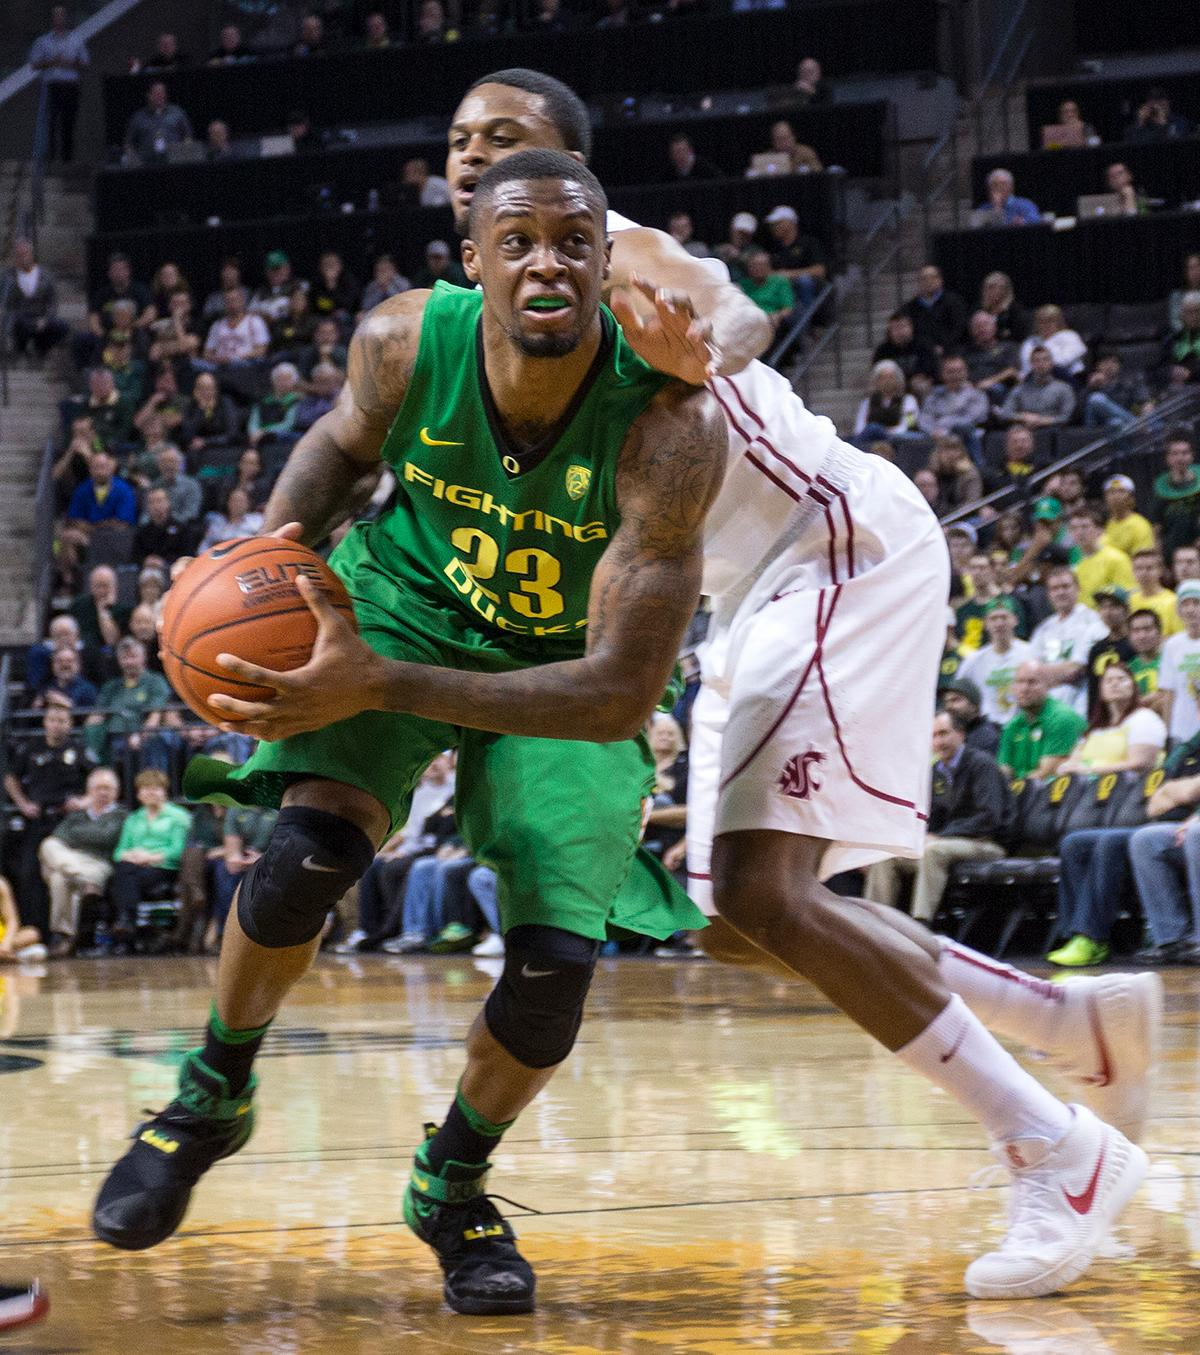 Oregon Ducks Elgin Cook (#23) drives toward the basket during the game against the Washington State Cougars. Cook led the Ducks with 24 points adding to their 76-62 win over the Cougars. Kianna Cabuco, Oregon News Lab